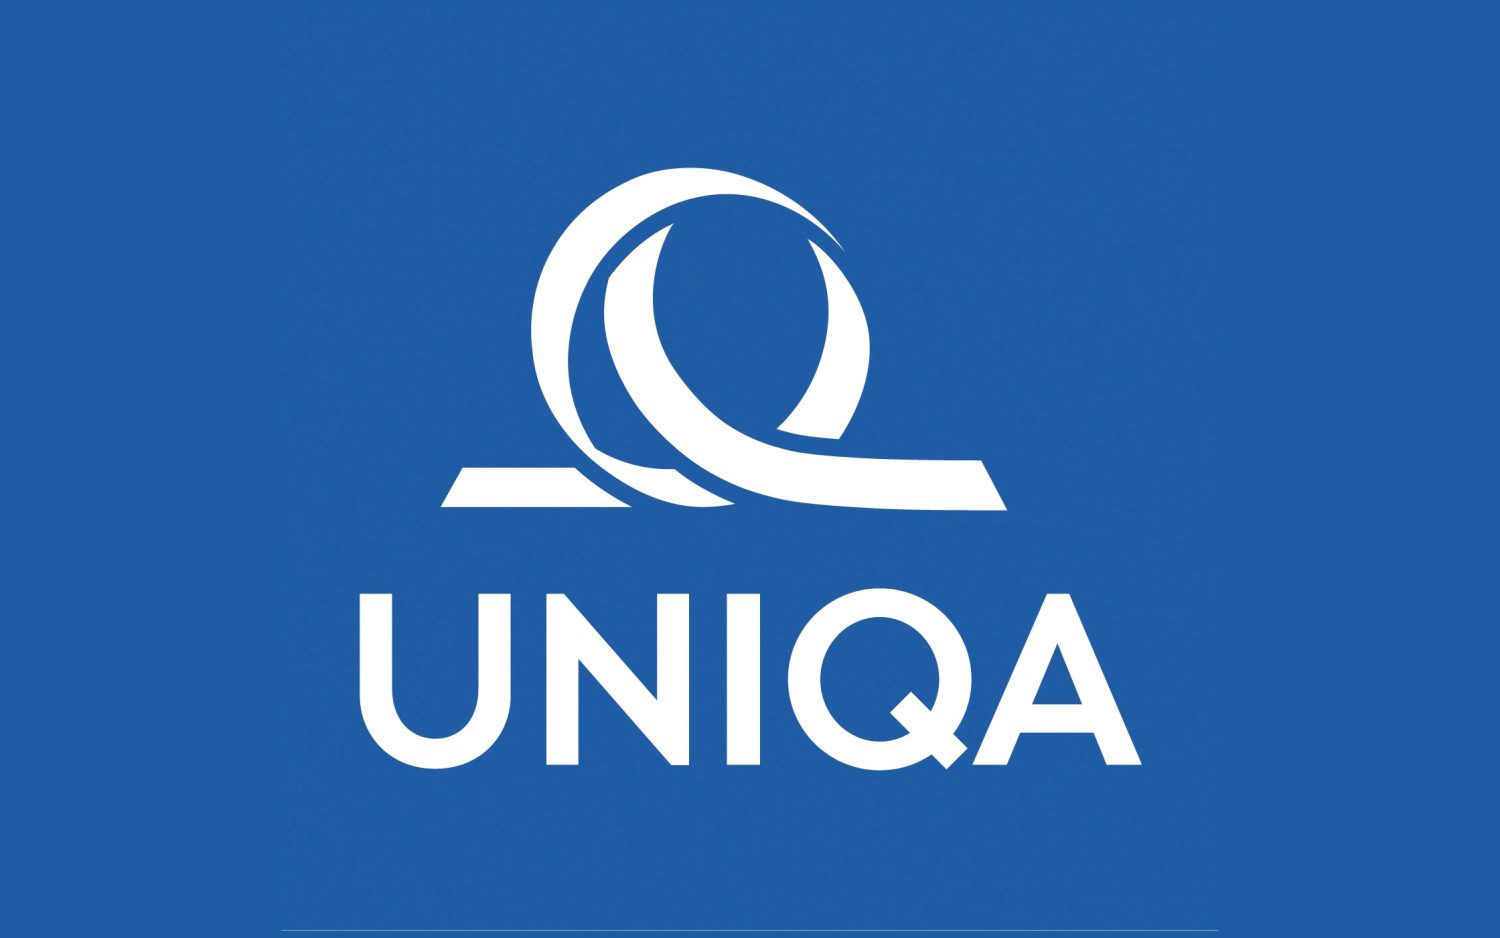 UNIQA Blu HiRes (2)